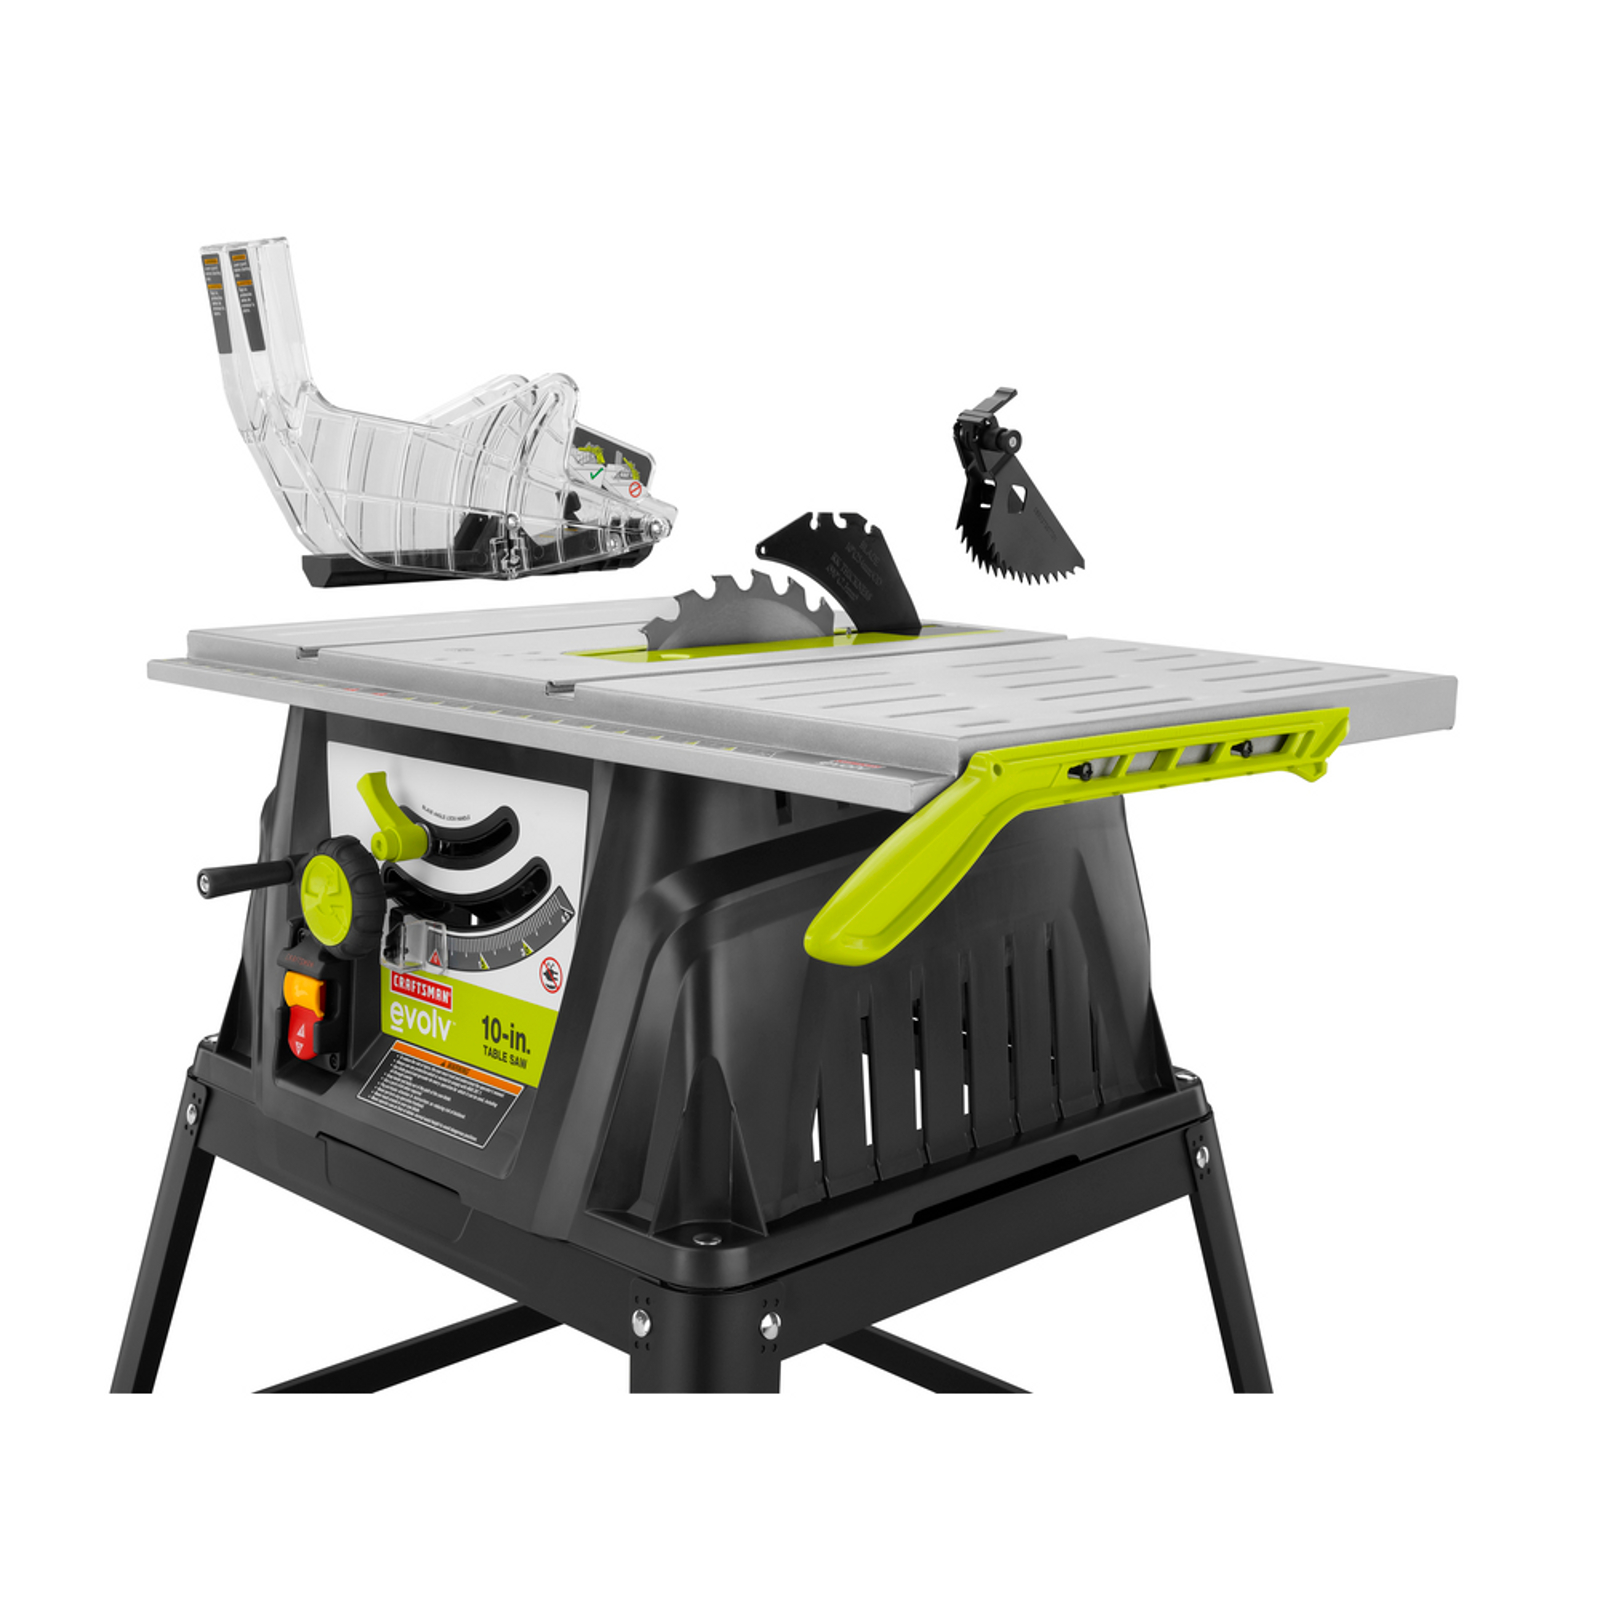 Evolv 15 Amp 10 in. Table Saw 28461